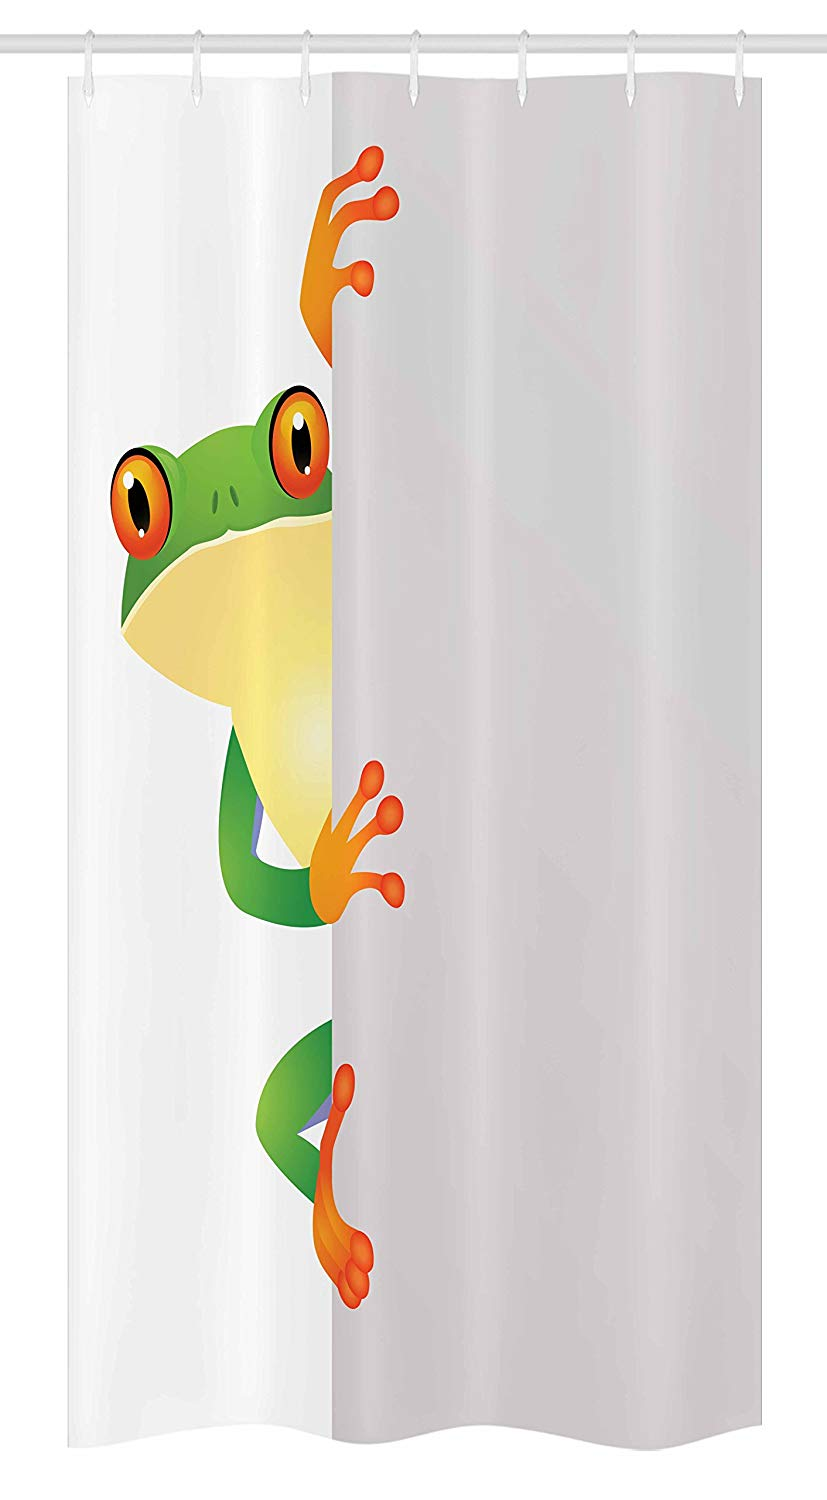 Ambesonne Reptile Stall Shower Curtain, Funky Frog Prince with Big Eyes on Wall Camouflage Nursery Reptiles Theme, Fabric Bathroom Decor Set with Hooks, 36